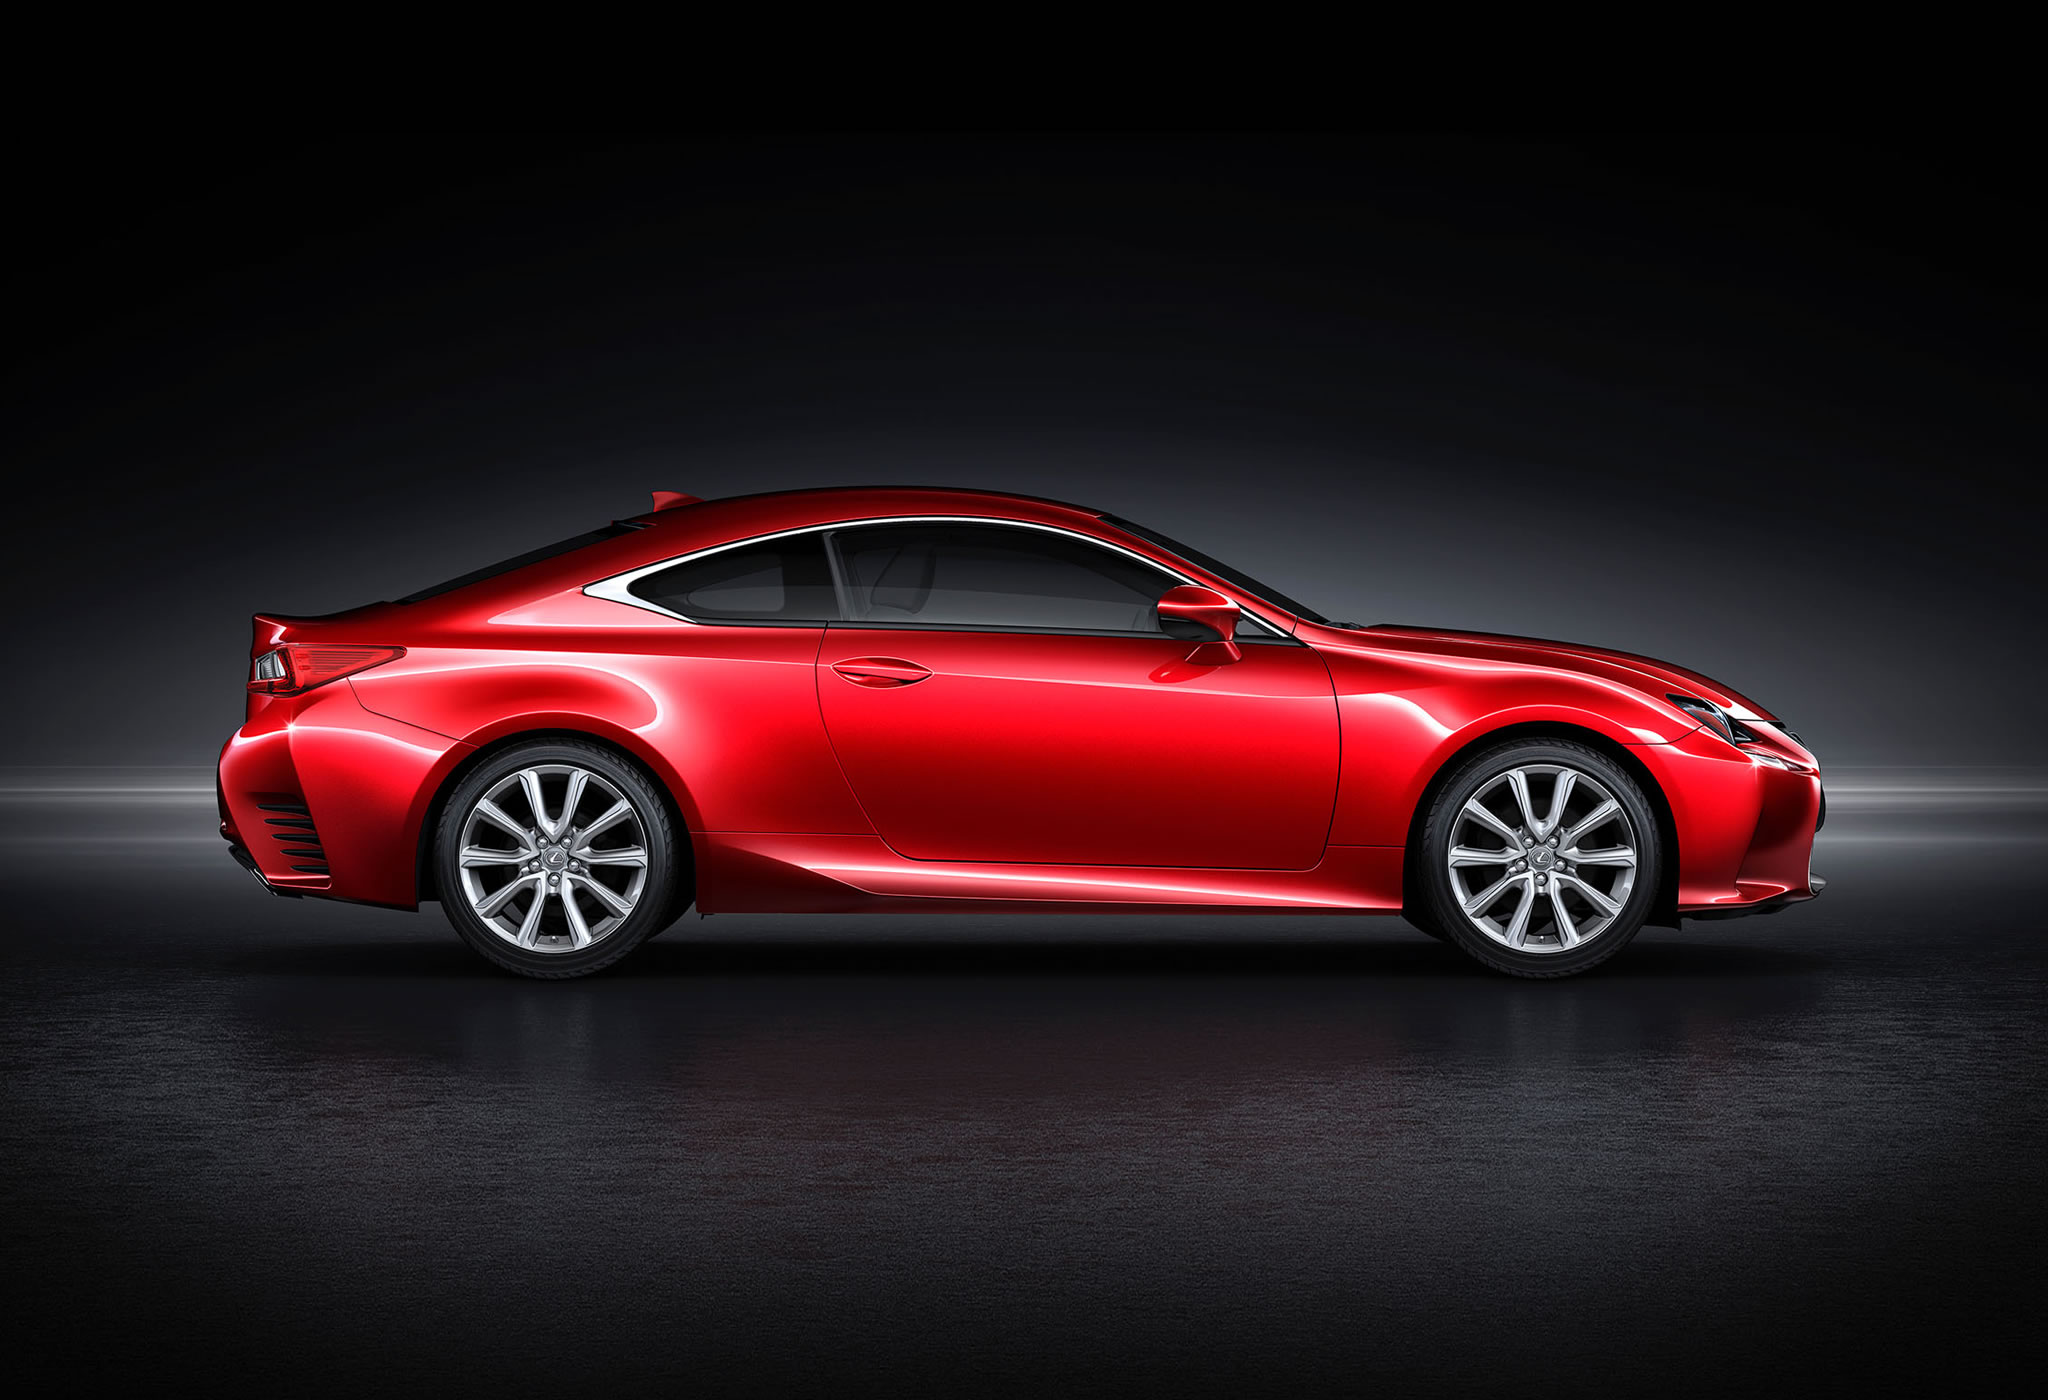 2015 Lexus Rc 350 Coupe Side Photo Red Color Size 2048